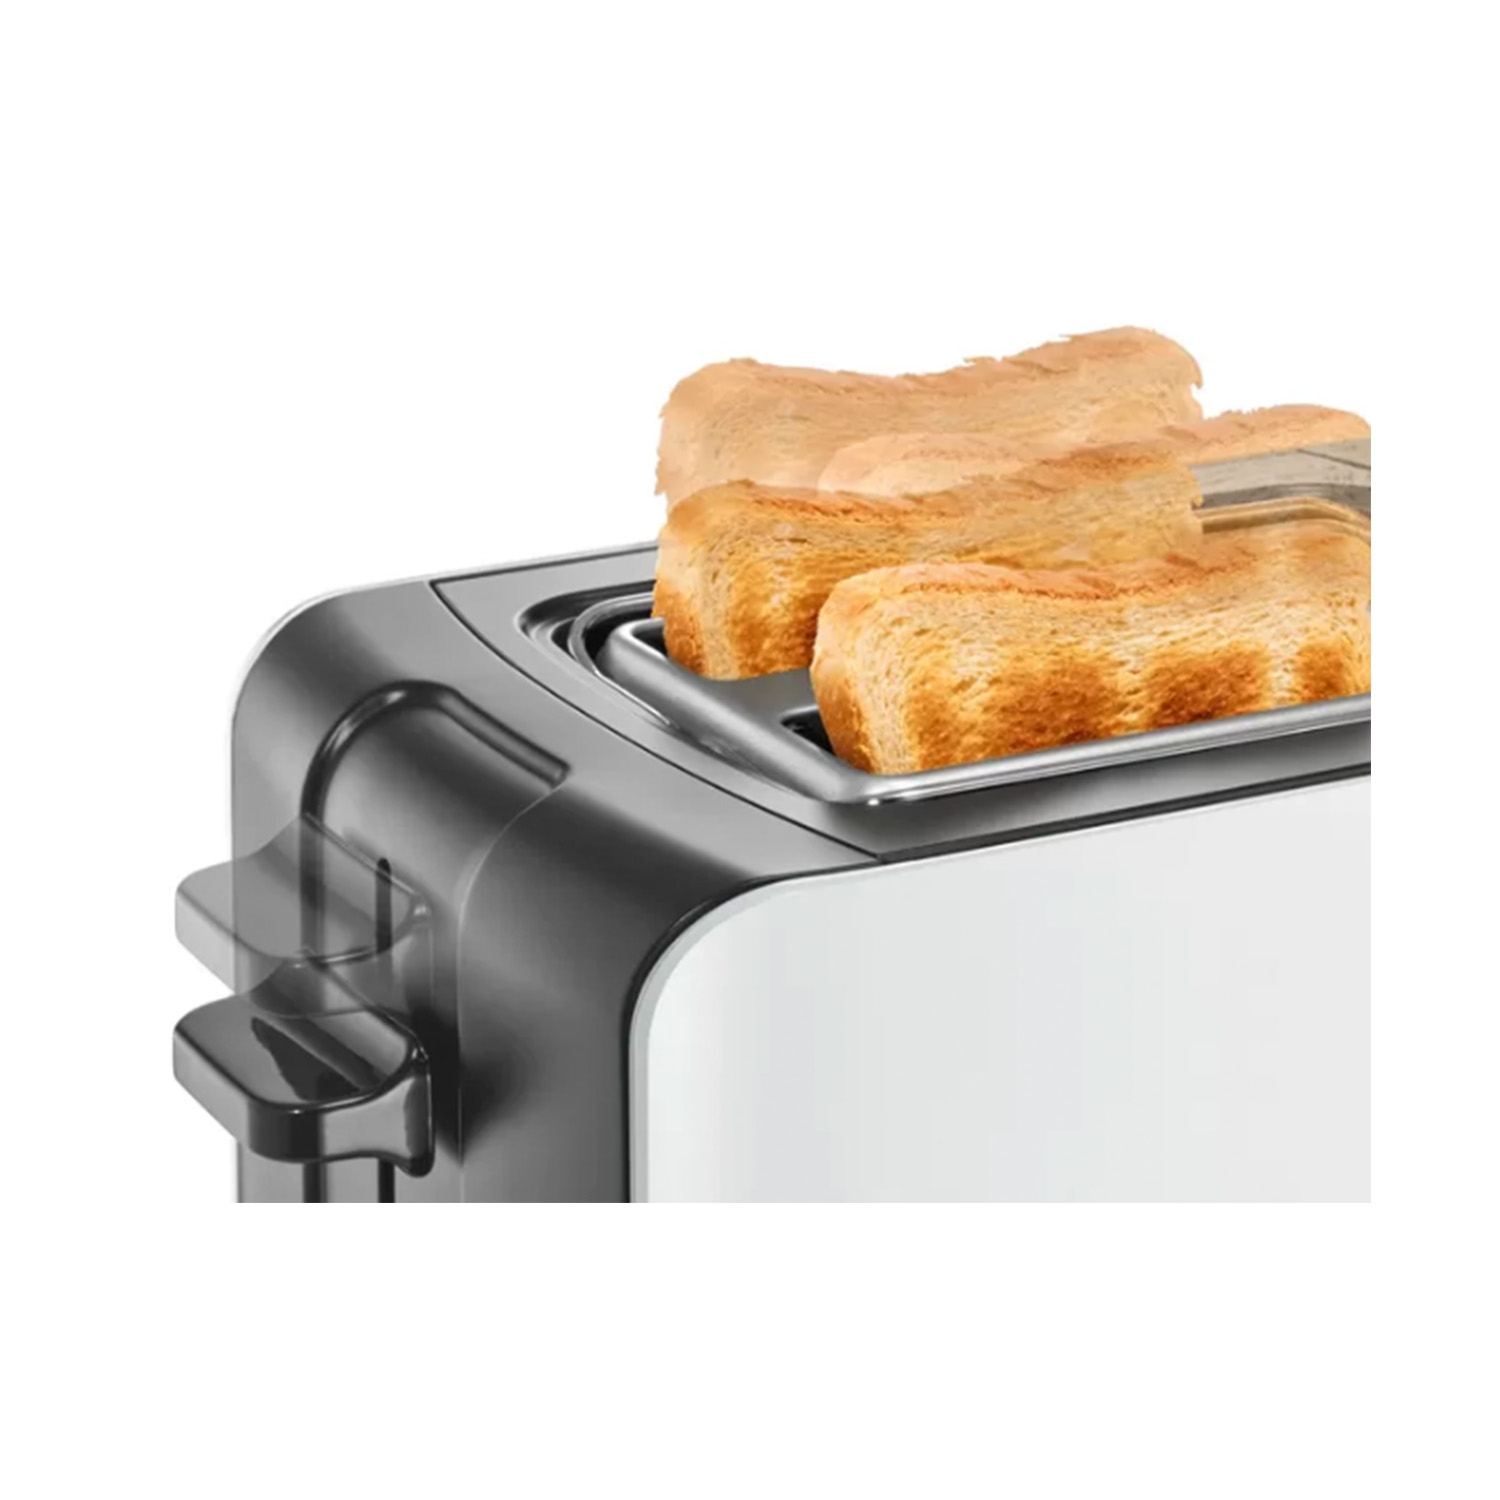 Bosch 2 Slice Toaster - White - 5